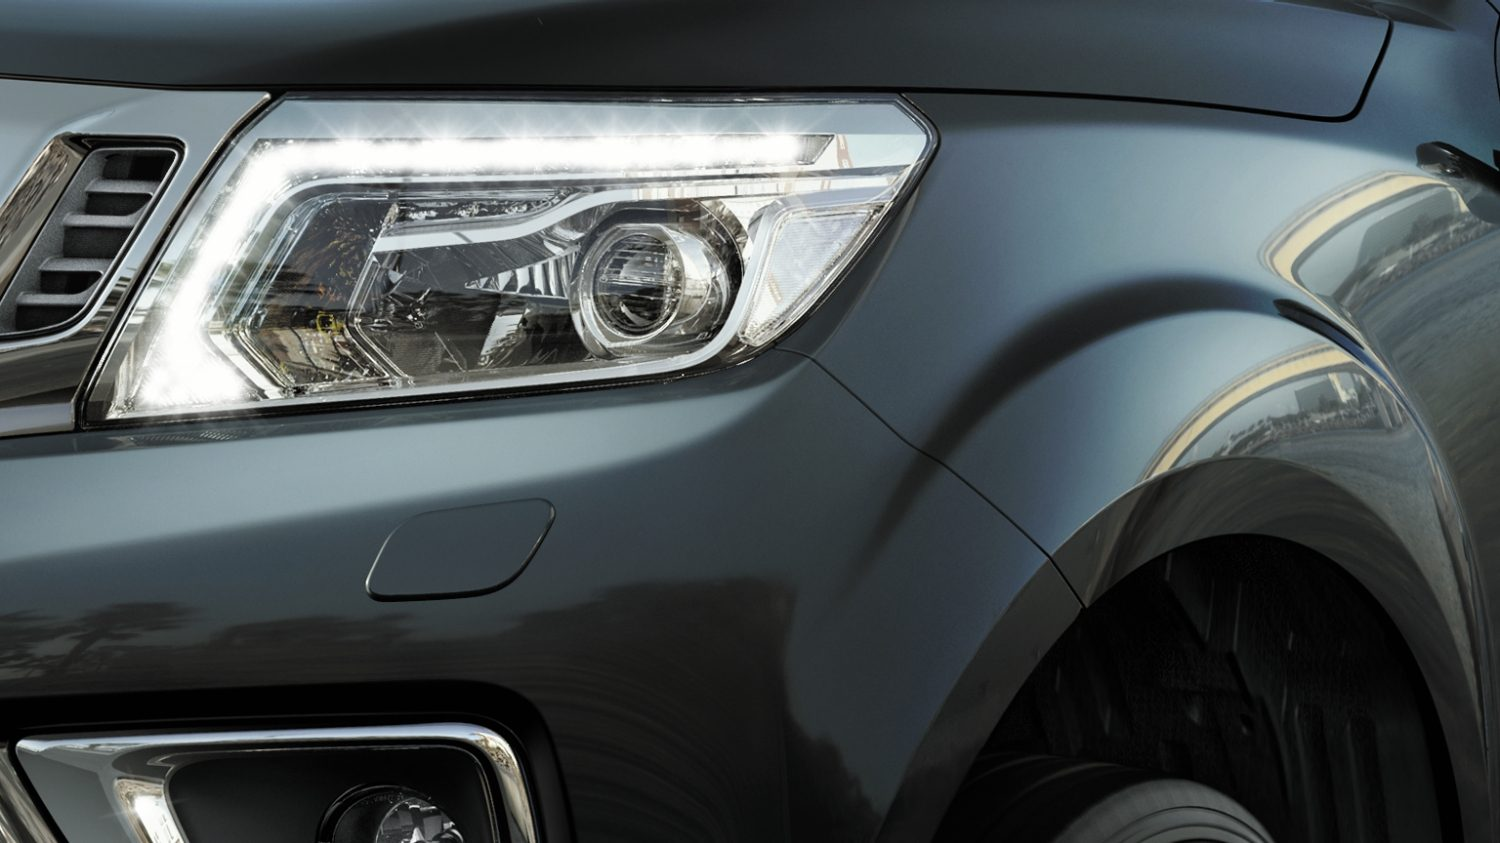 Navara | Nissan | Pick up truck LED headlights